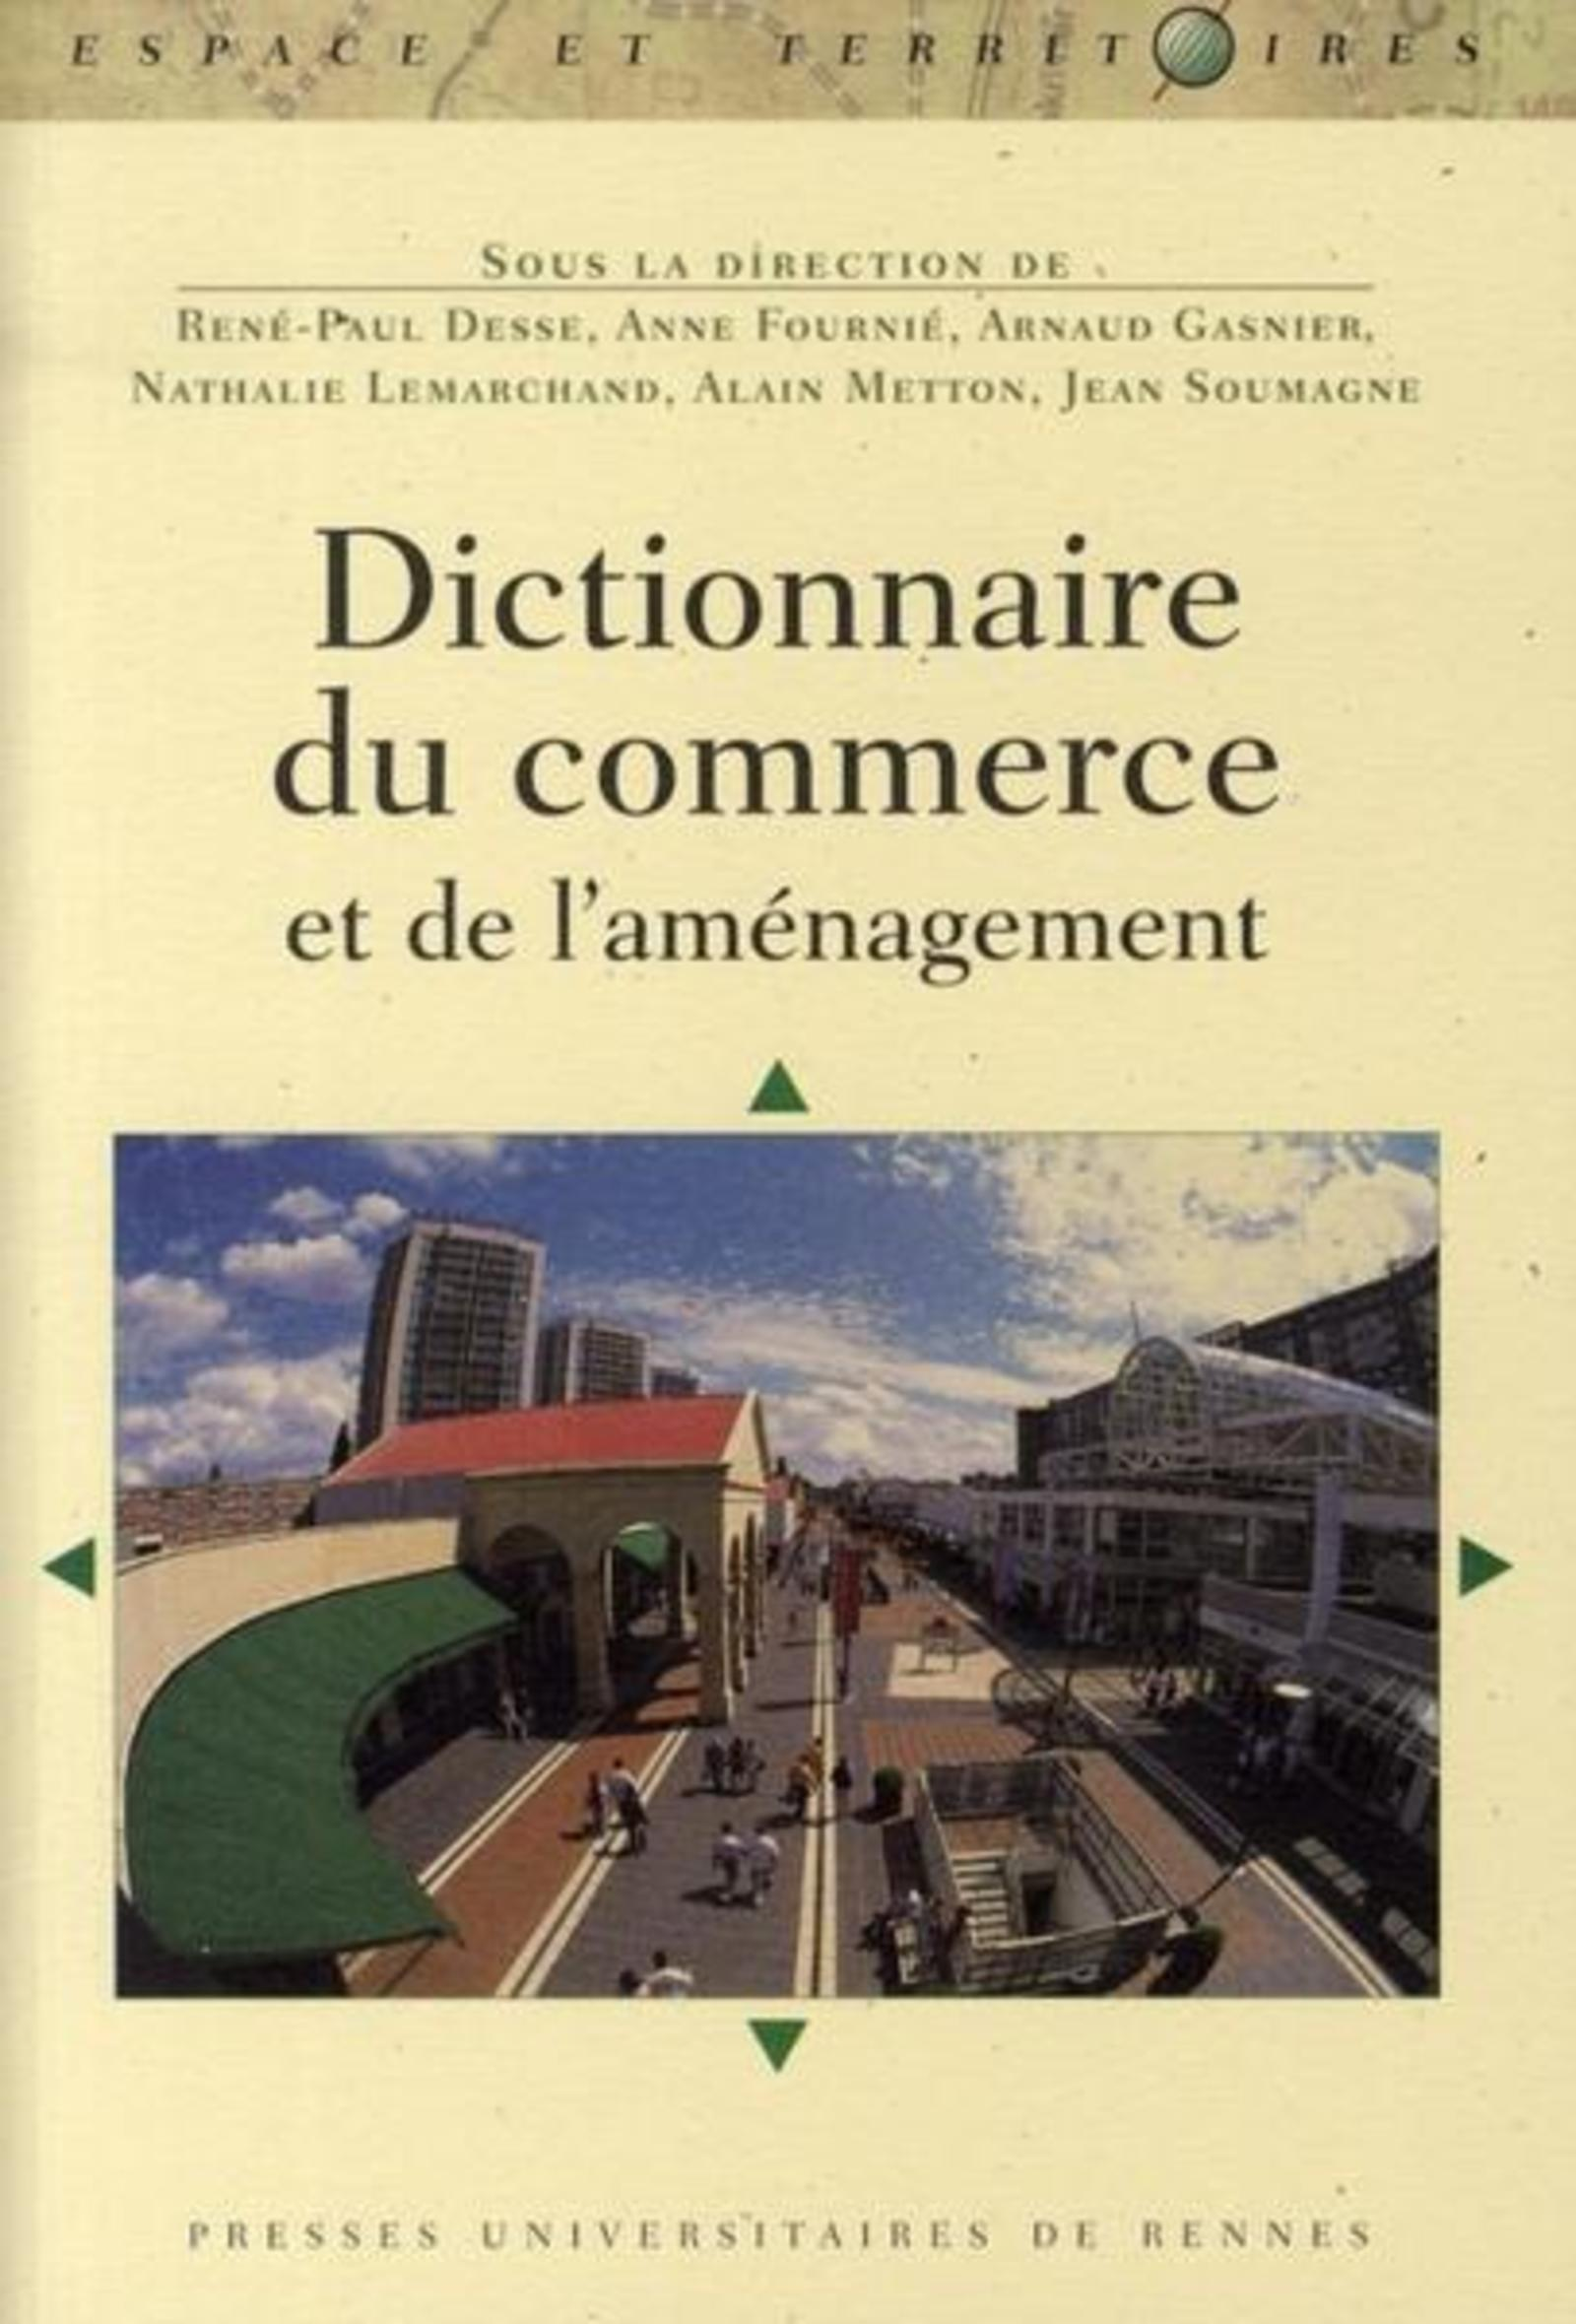 DICTIONNAIRE DU COMMERCE ET DE L AMENAGEMENT